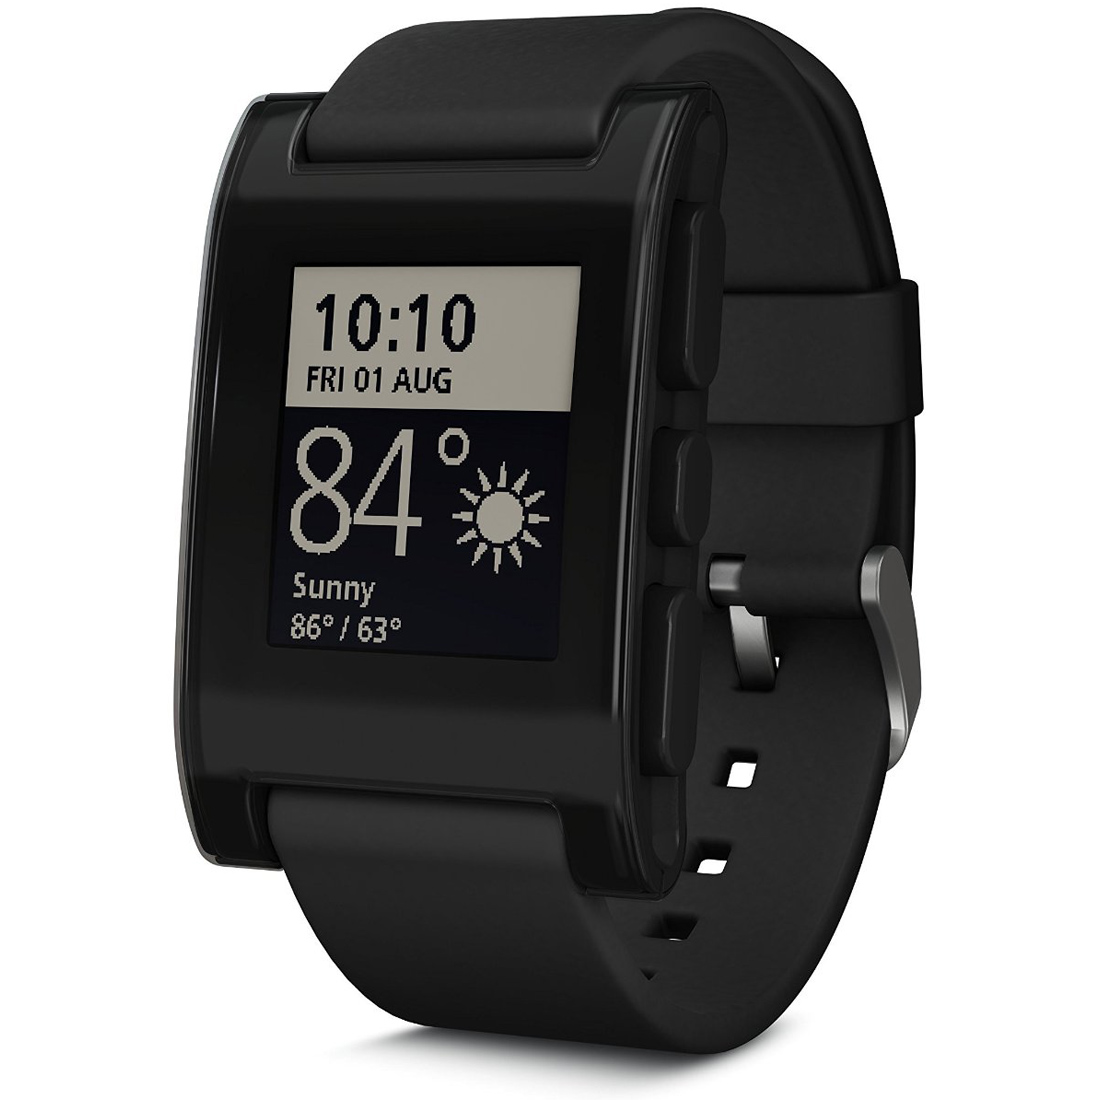 Pebble Smart Watch for iPhone and Android Devices (Black) 301BL